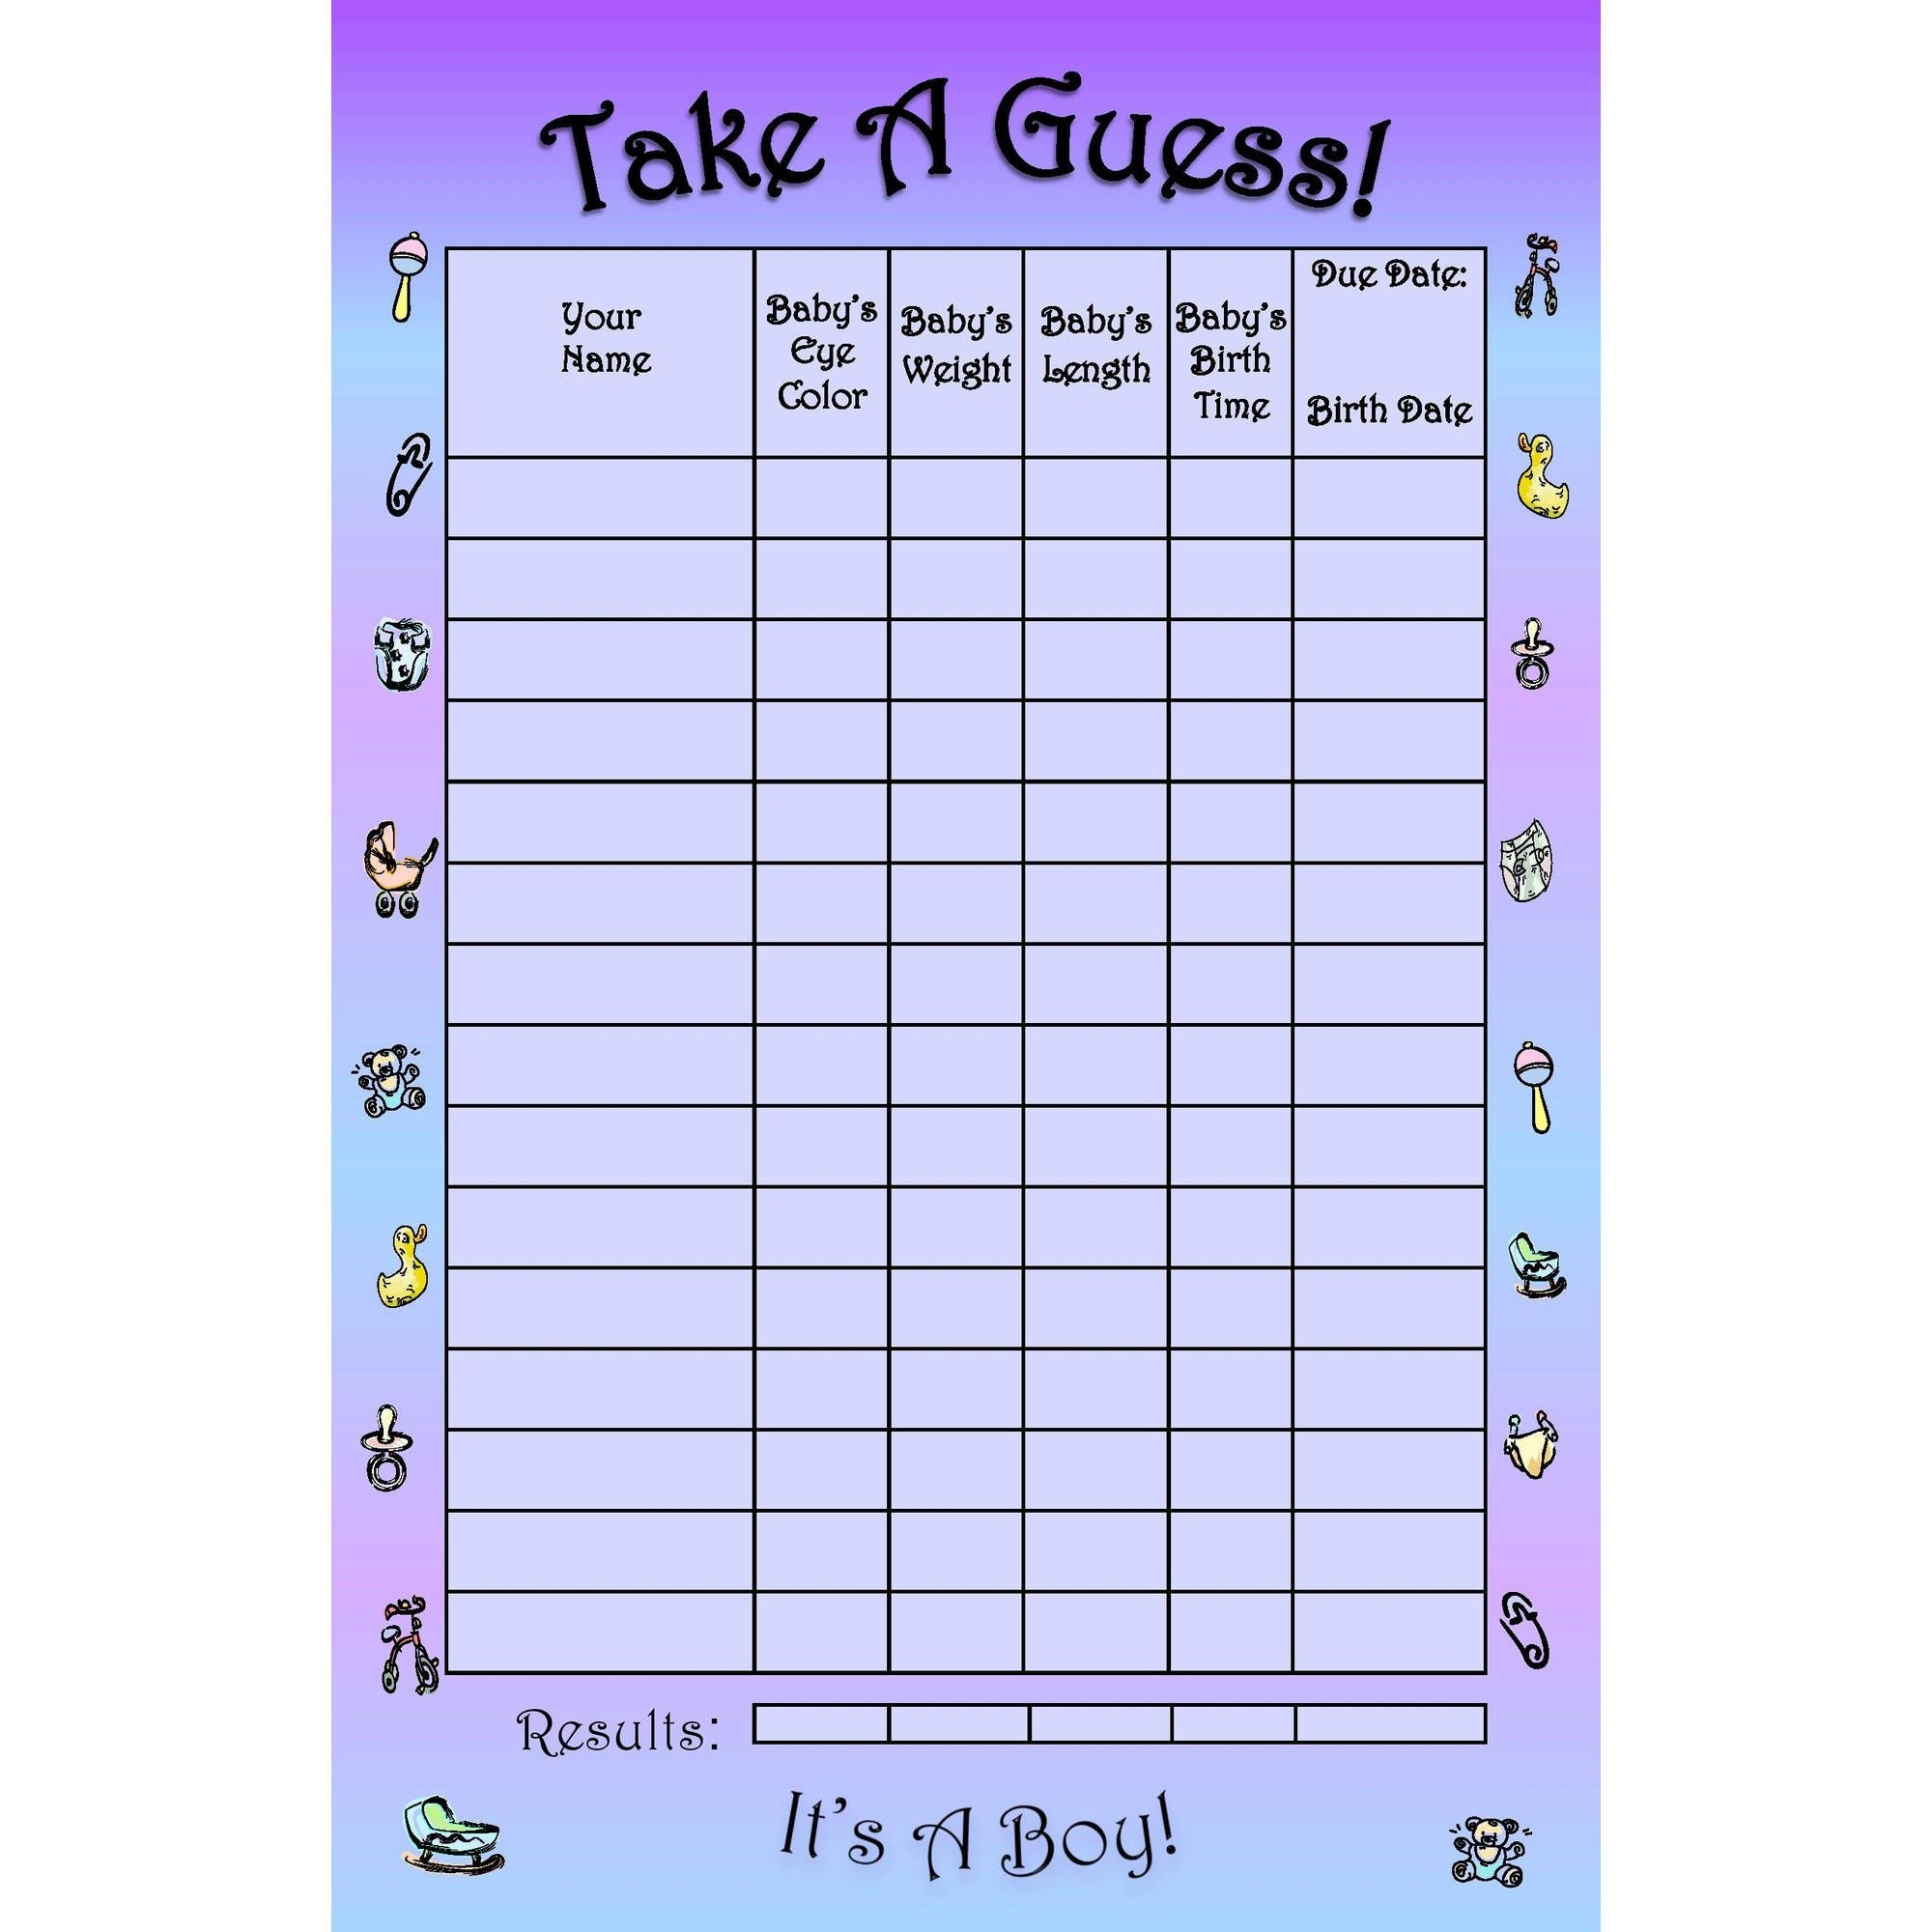 Bundle Board It's A Boy! Baby Guessing Game And Keepsake, Small: 15 Players  - Walmart